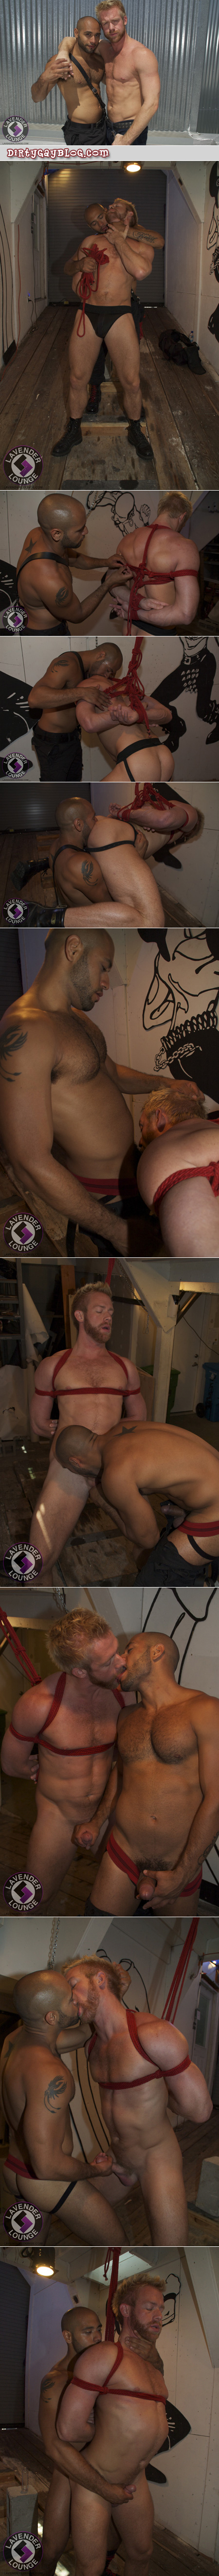 Japanese rope bondage expert ties up a muscular hairy blonde guy with a big horse cock.